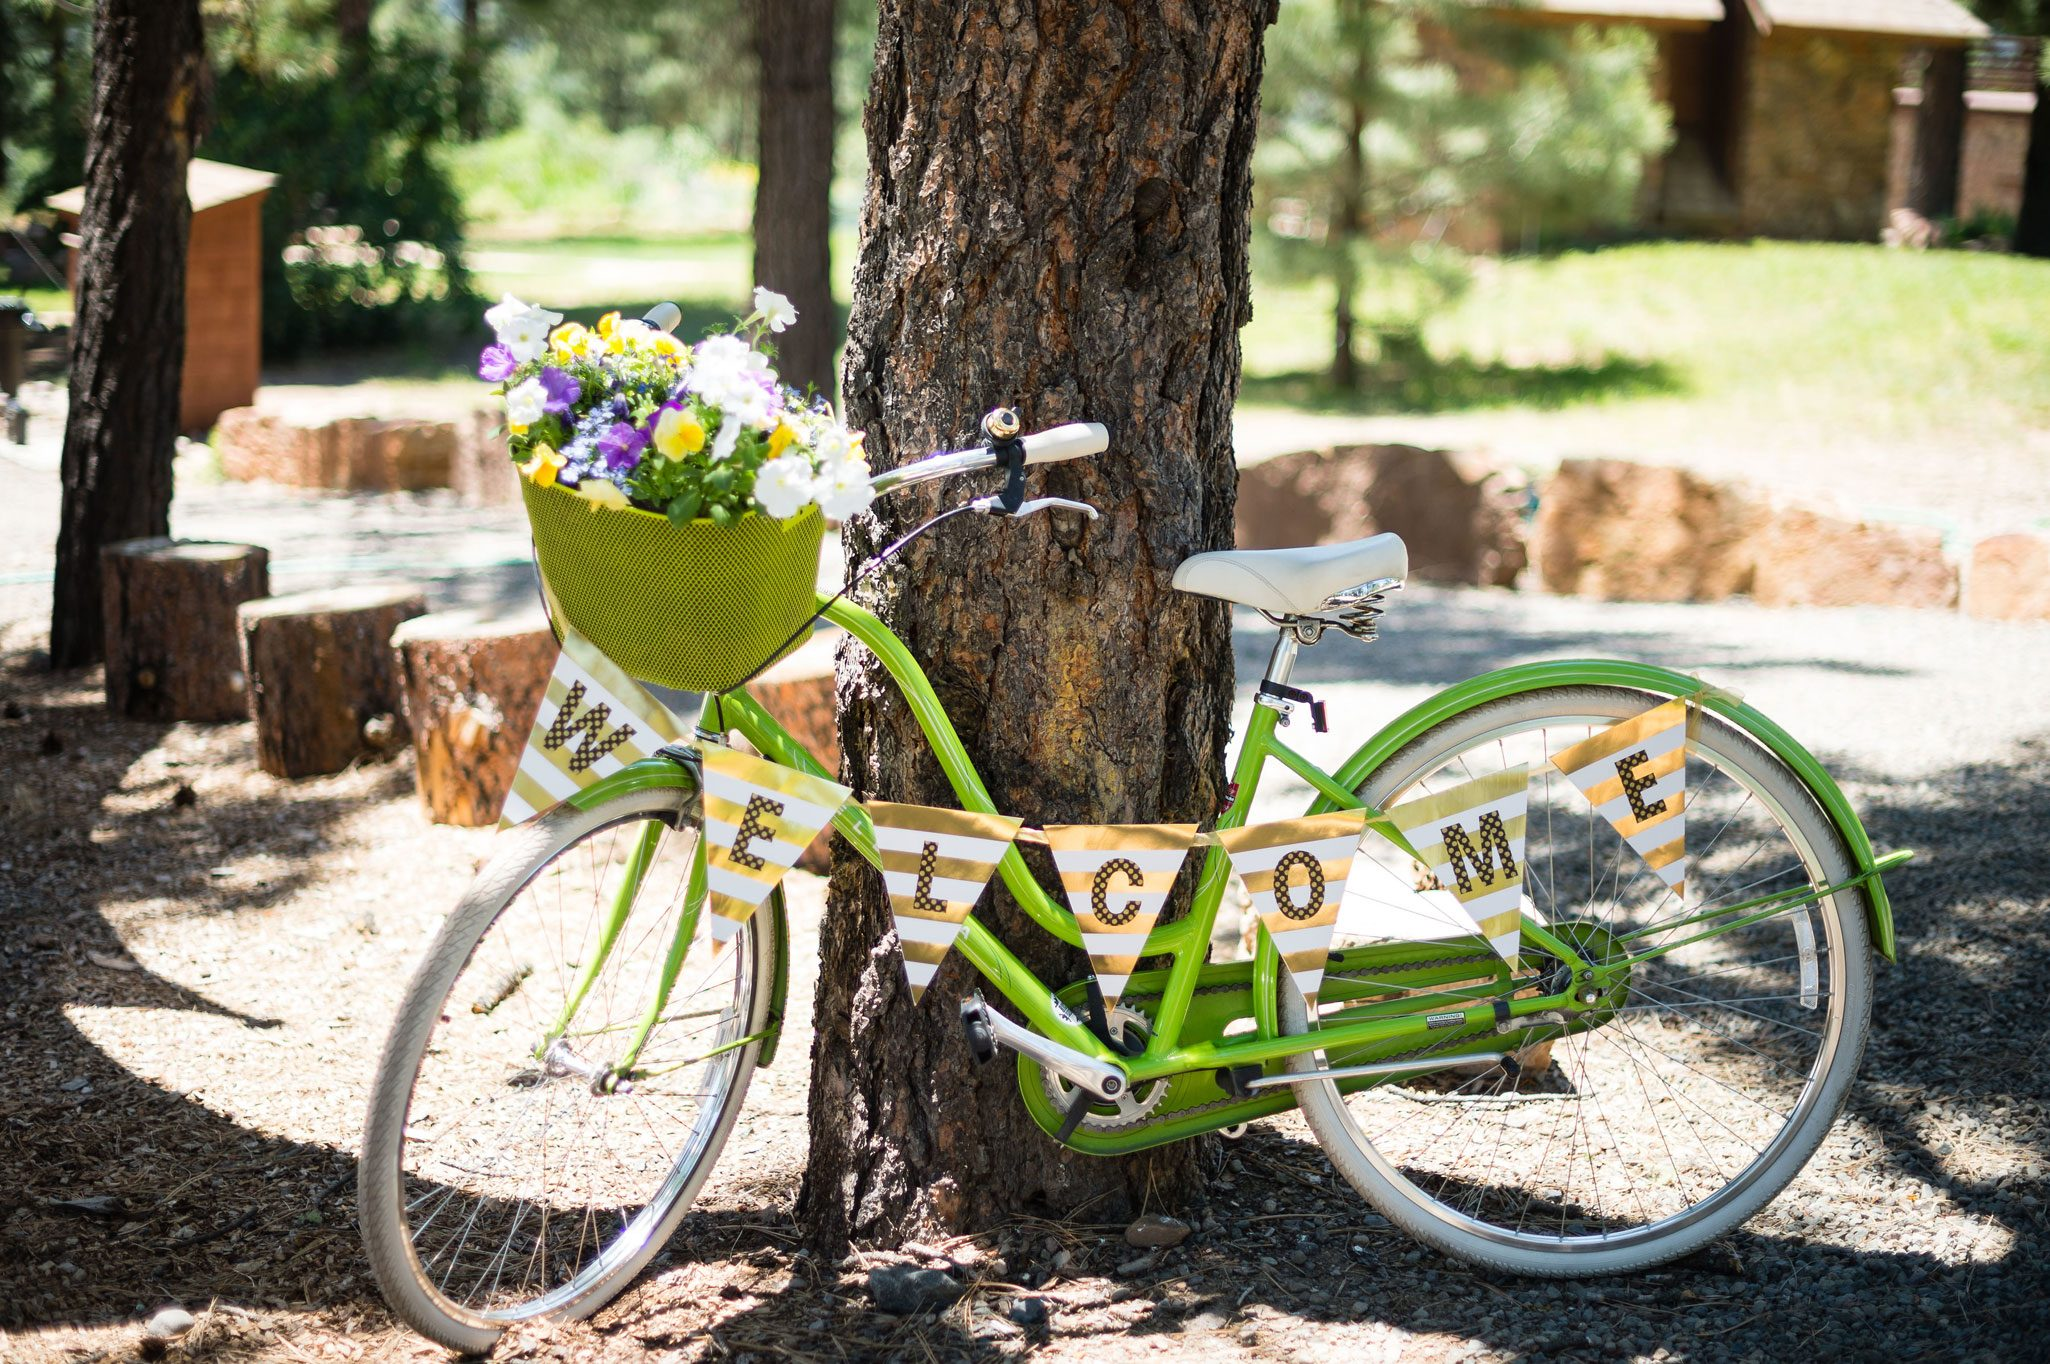 Welcome to our bike themed wedding